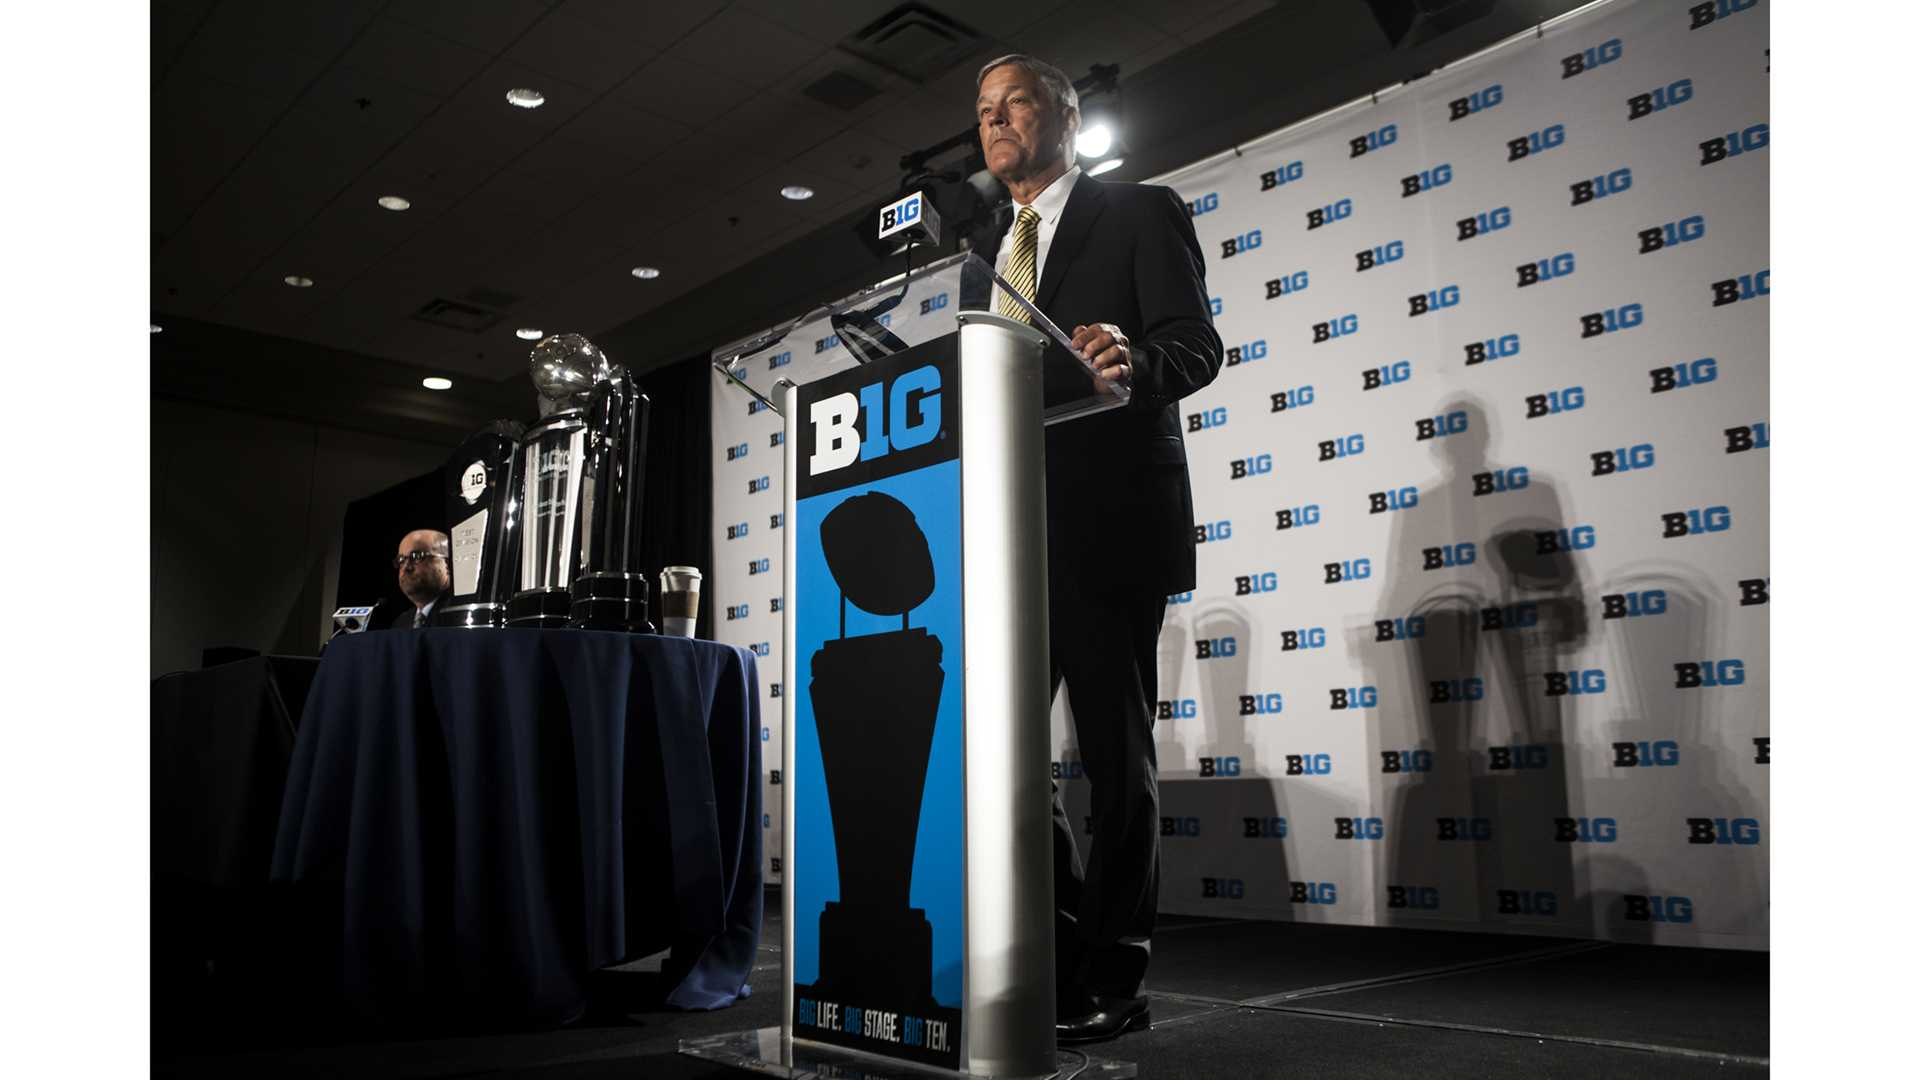 Iowa Head Coach Kirk Ferentz addresses the media during Big Ten Football Media Days in Chicago on Tuesday, July 24, 2018. (Nick Rohlman/The Daily Iowan)